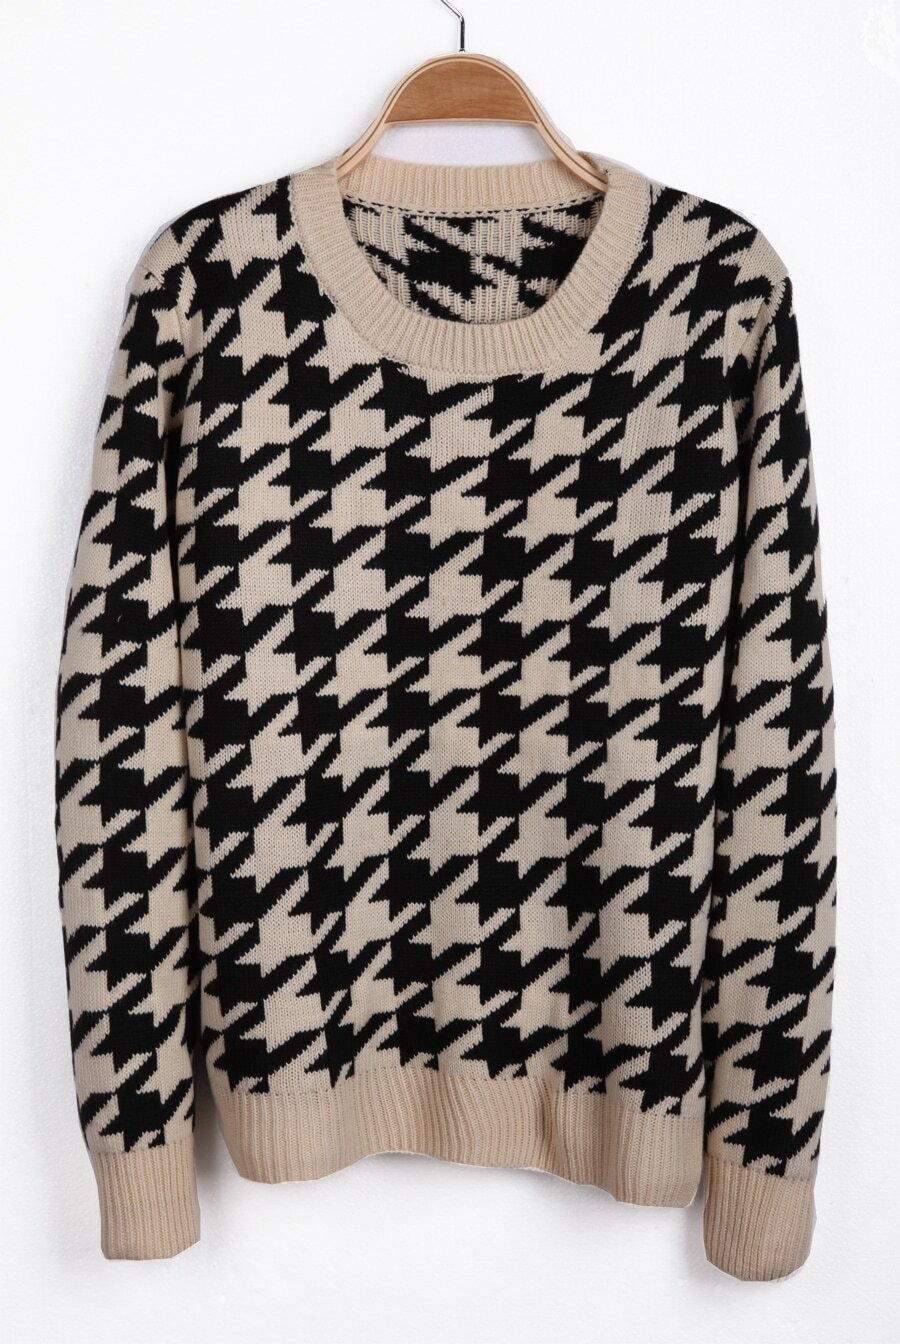 Houndstooth Knitting Pattern In The Round : Apricot Long Sleeve Houndstooth Pullover Sweater -SheIn(Sheinside)